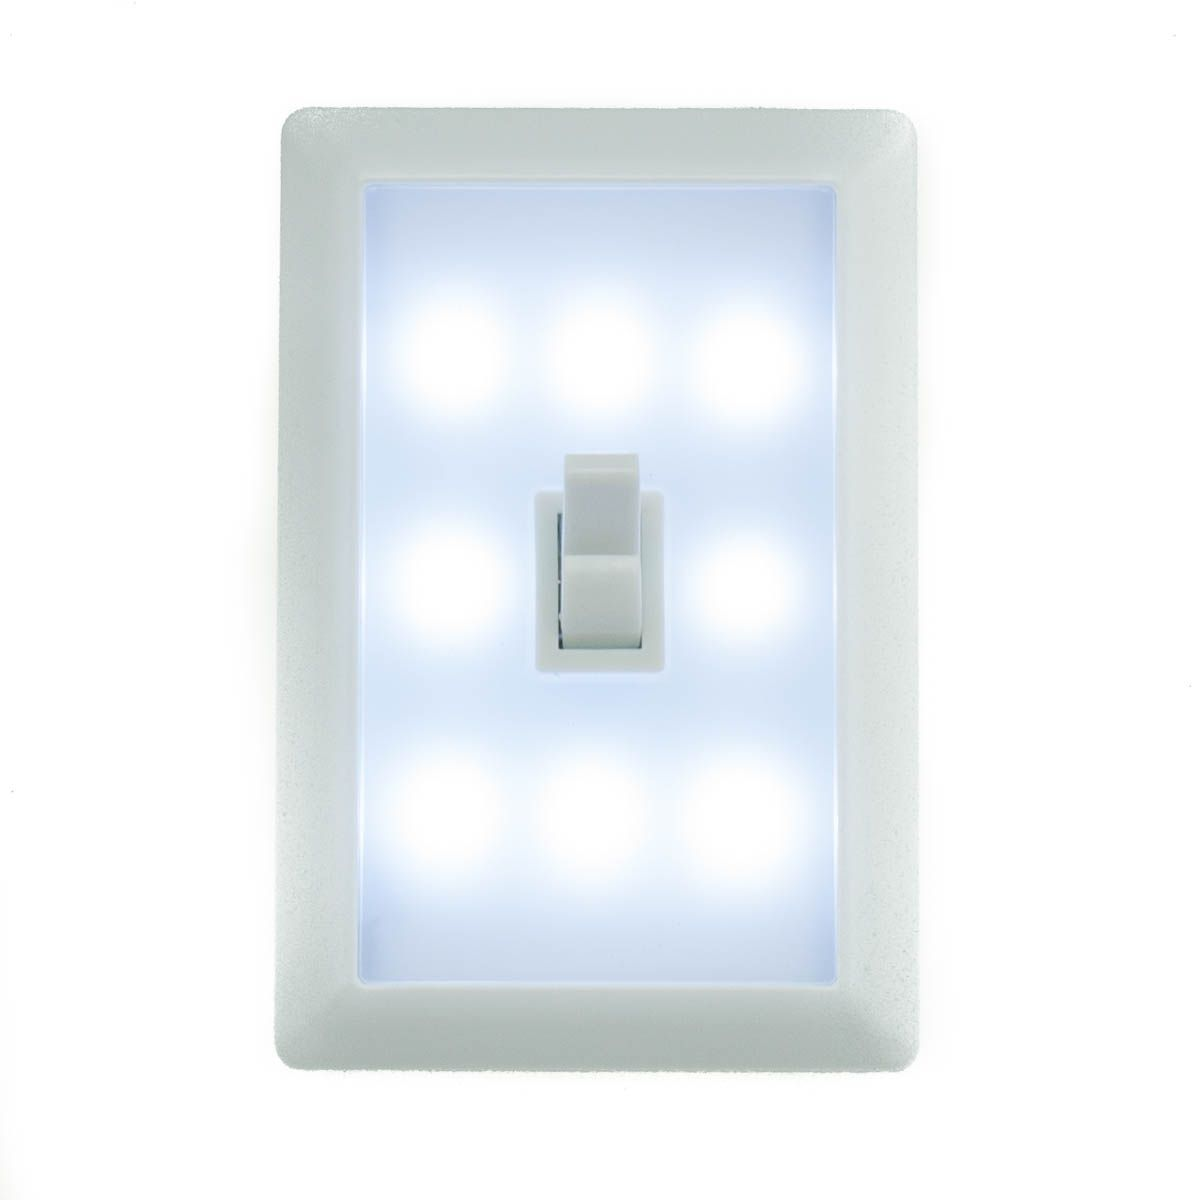 Light Switch Night Light - Walmart.com